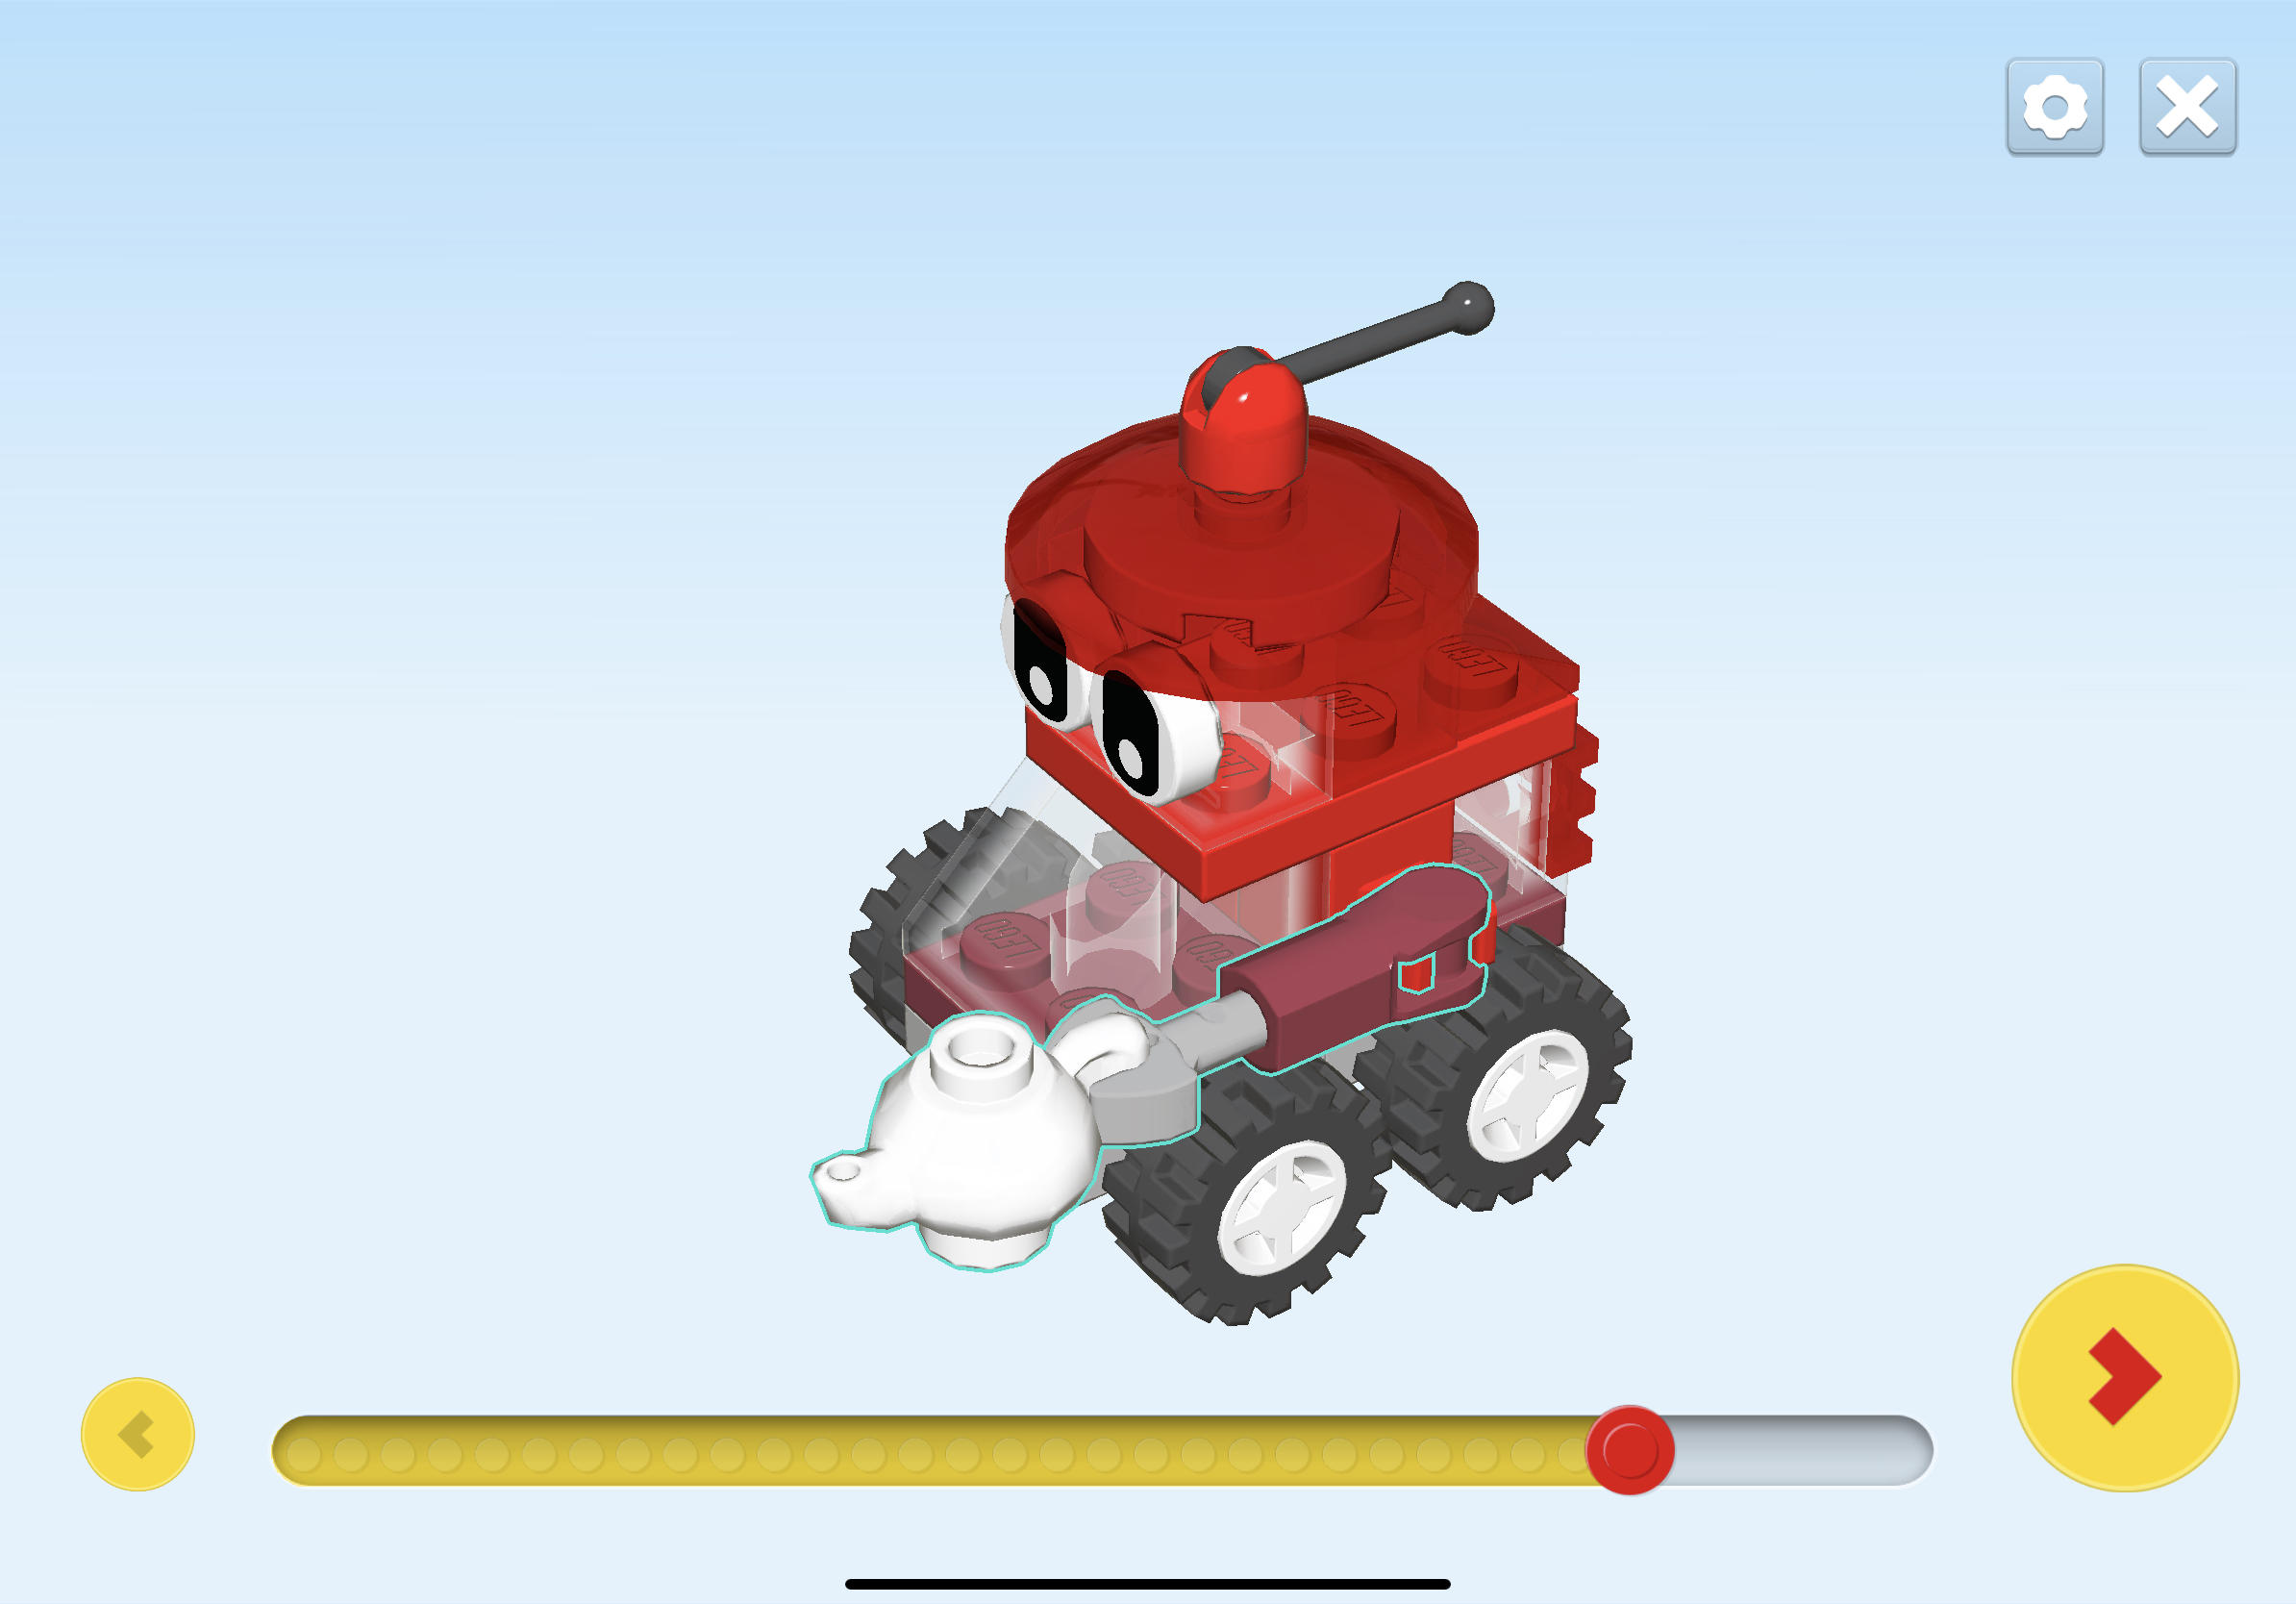 Best app for young kids - Lego Building Instructions